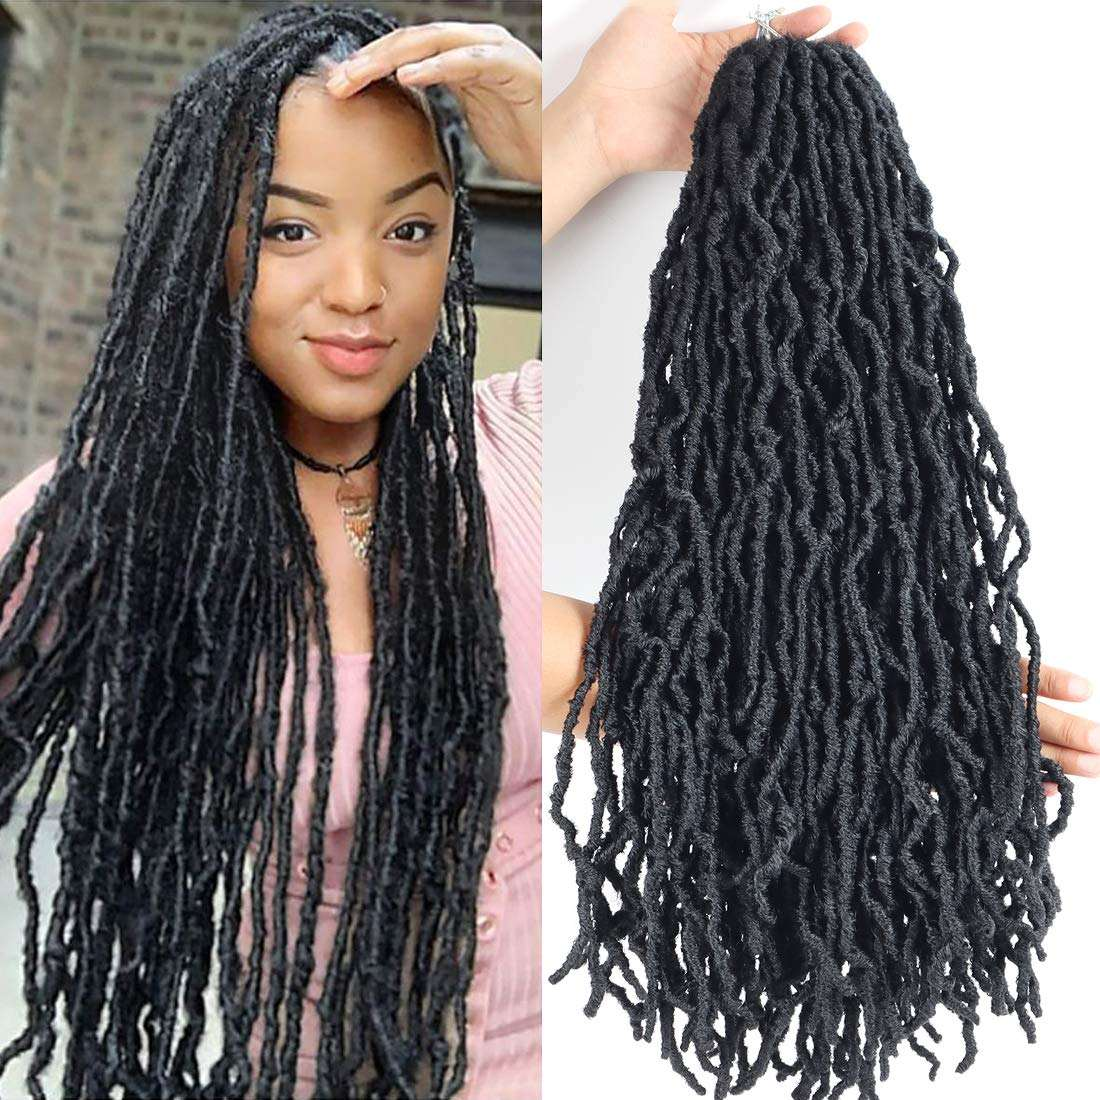 Wholesale 14 18 24 36 inch Synthetic Crochet Braid Hair Extensions Ombre Faux locs Hair Pre Looped Crochet Hair